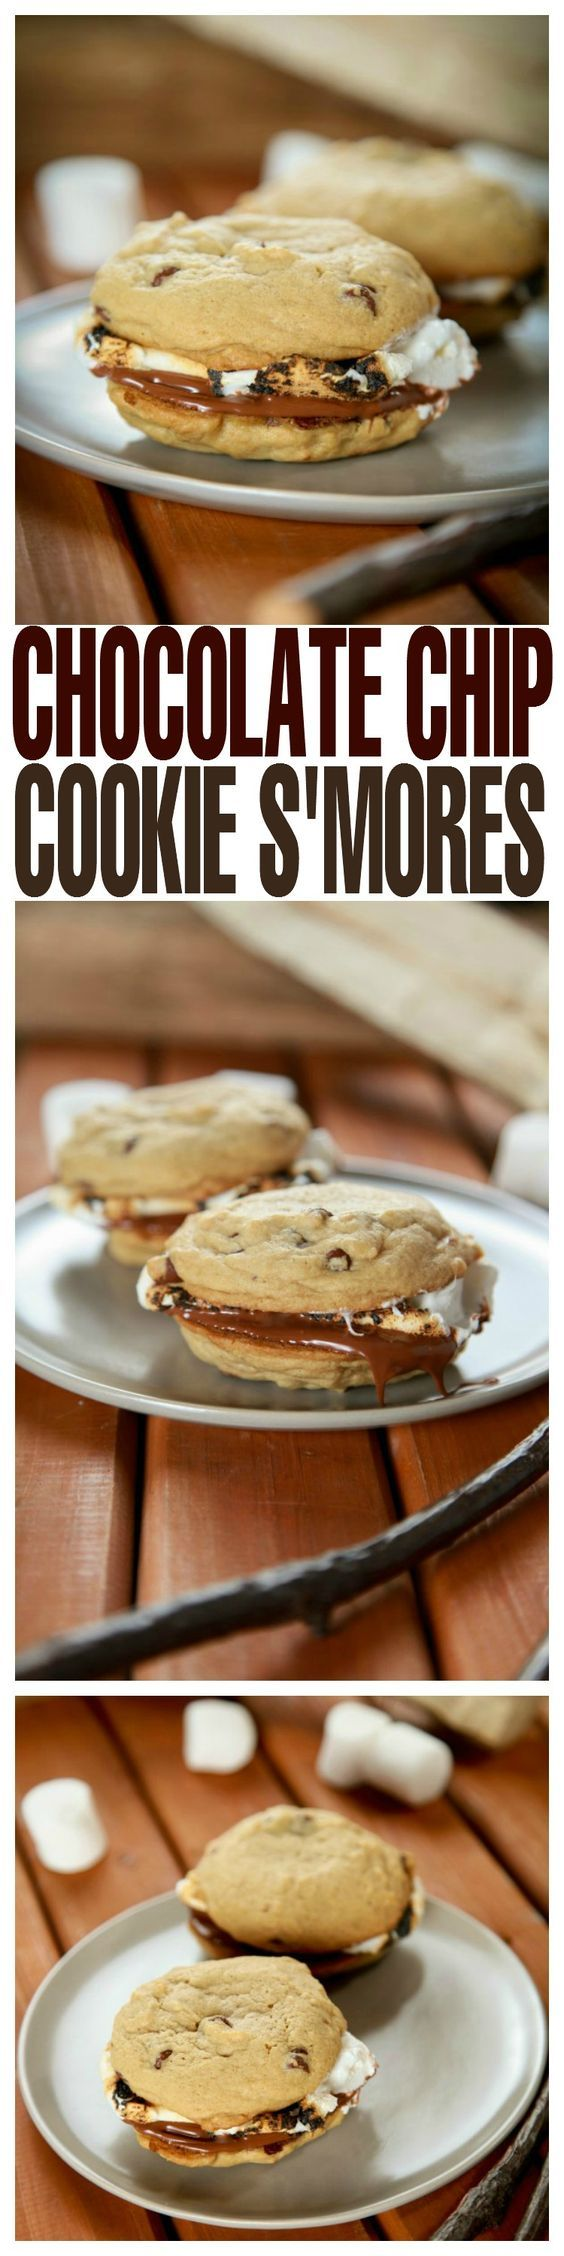 Gooey marshmallow and creamy chocolate sandwiched between two chewy chocolate chip cookies. #cookie #smore